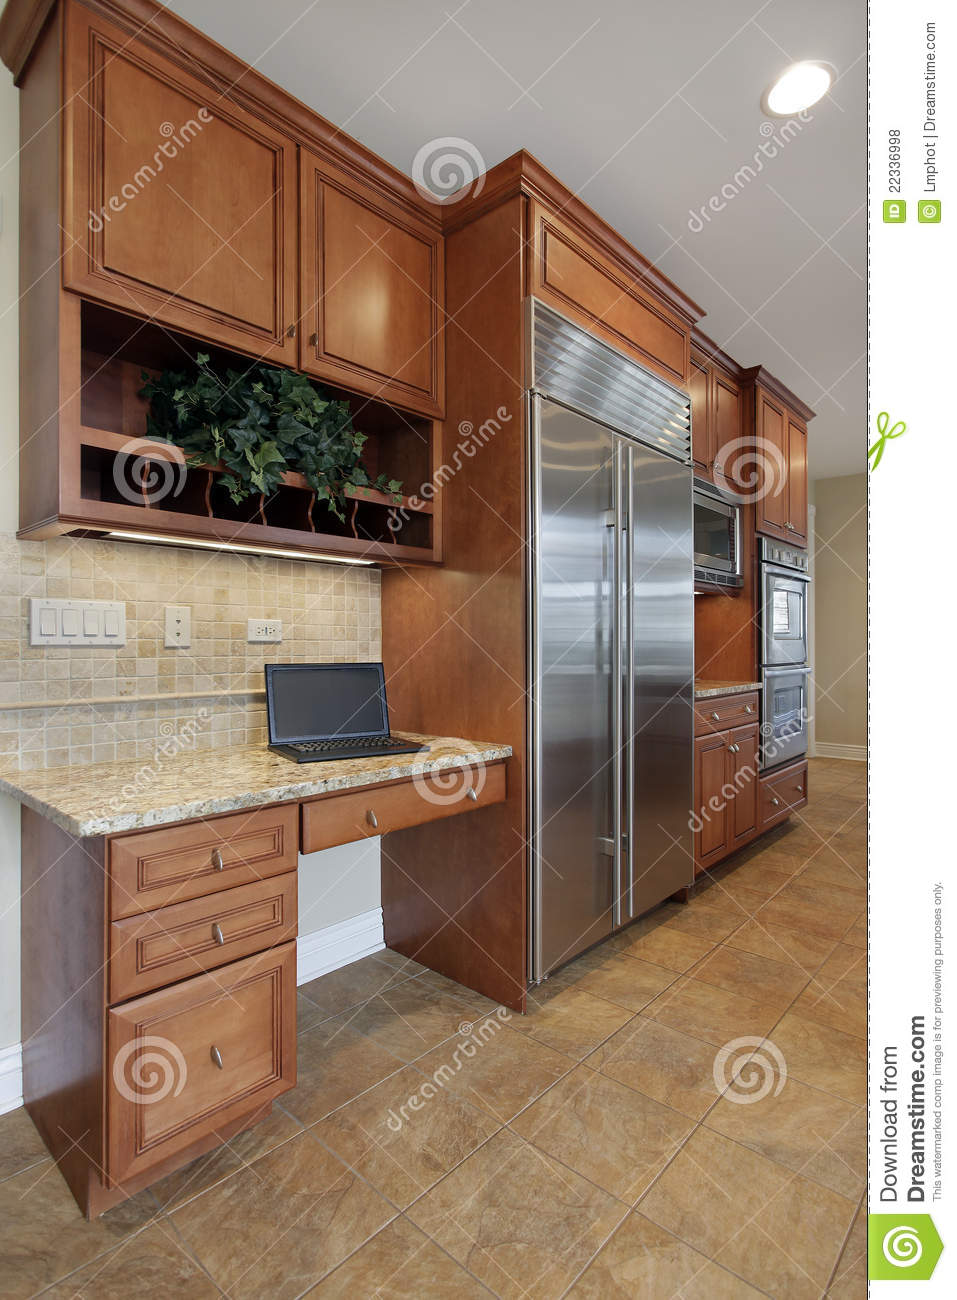 Kitchen Desk Kitchen Desk Area Royalty Free Stock Photos Image 22336998